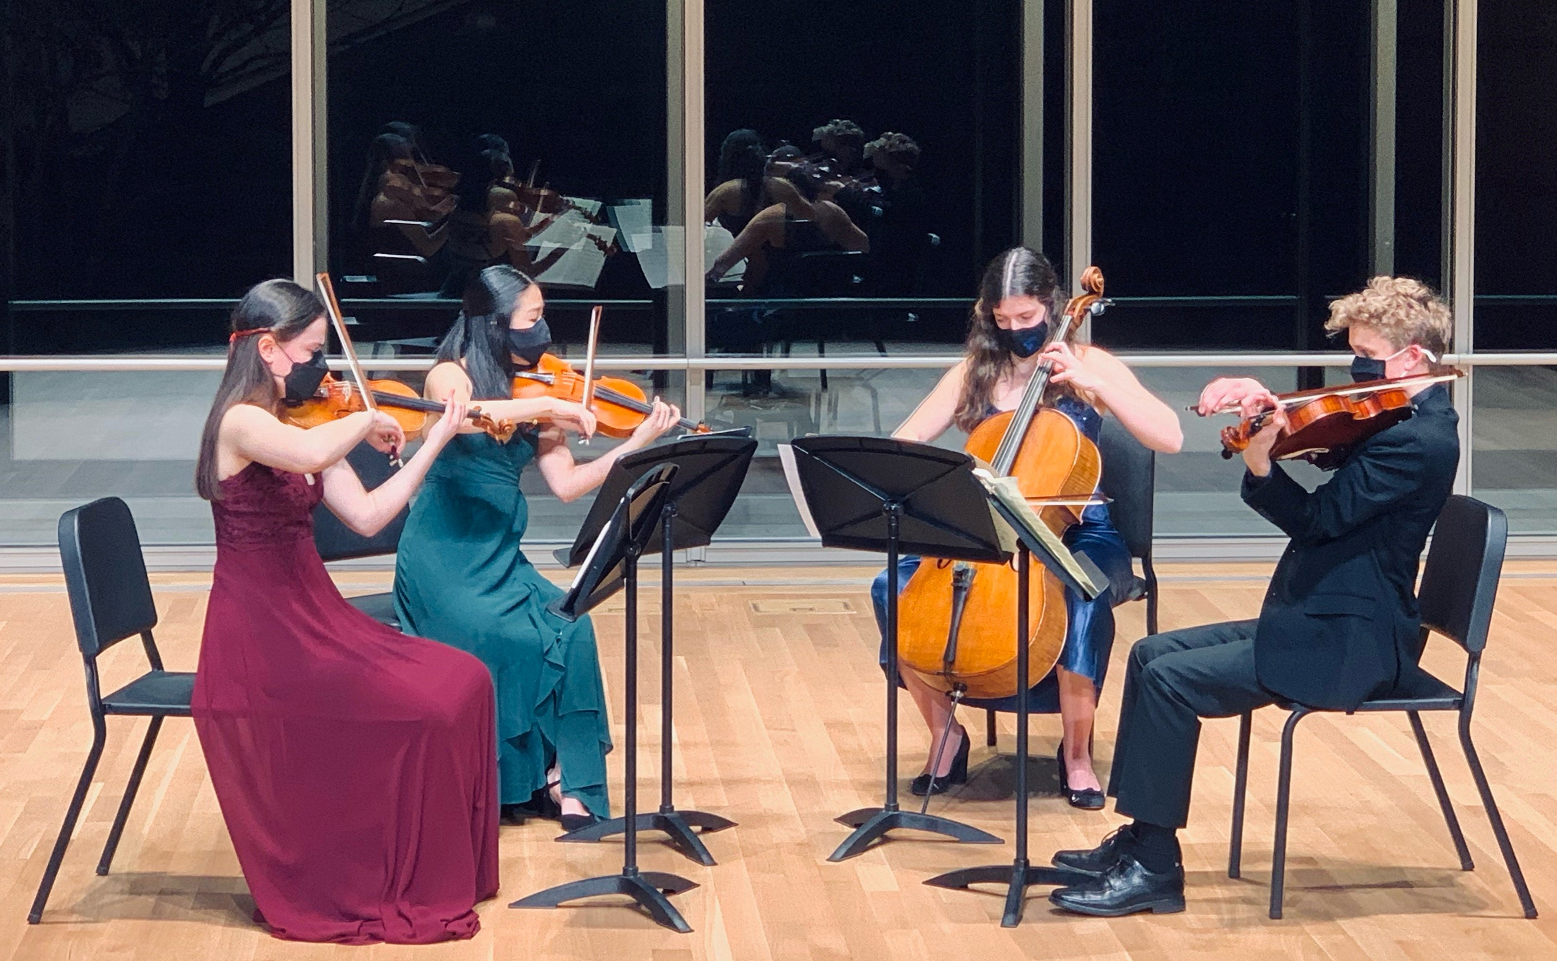 Lumiere Quartet - from left, two young women playing violin, one young woman playing cello and one young man playing viola